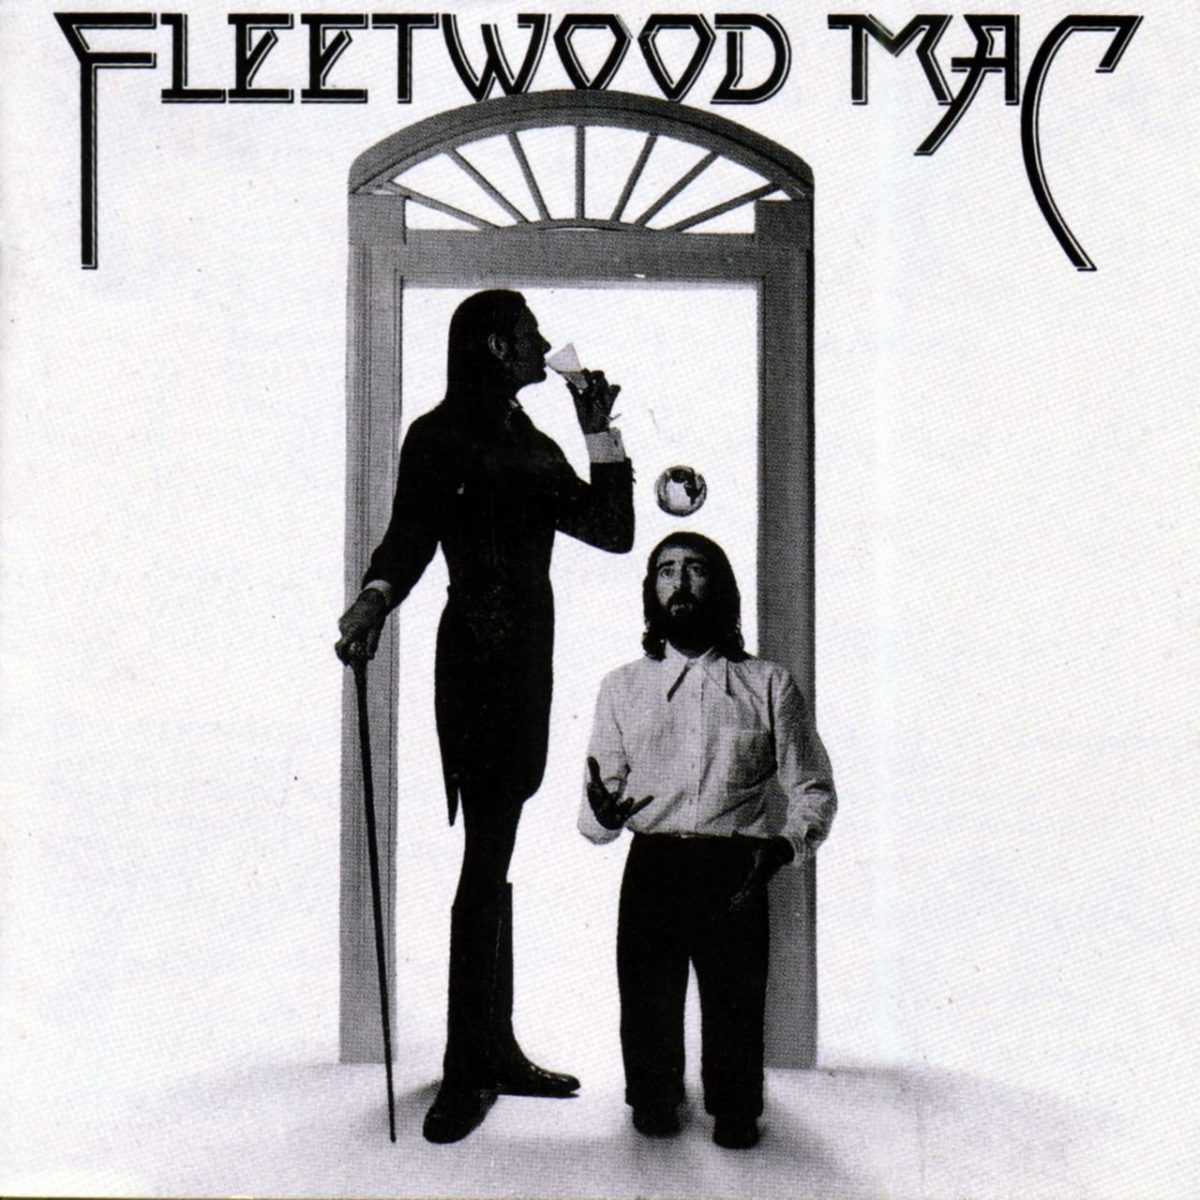 Fleetwood Mac 1975 Cover